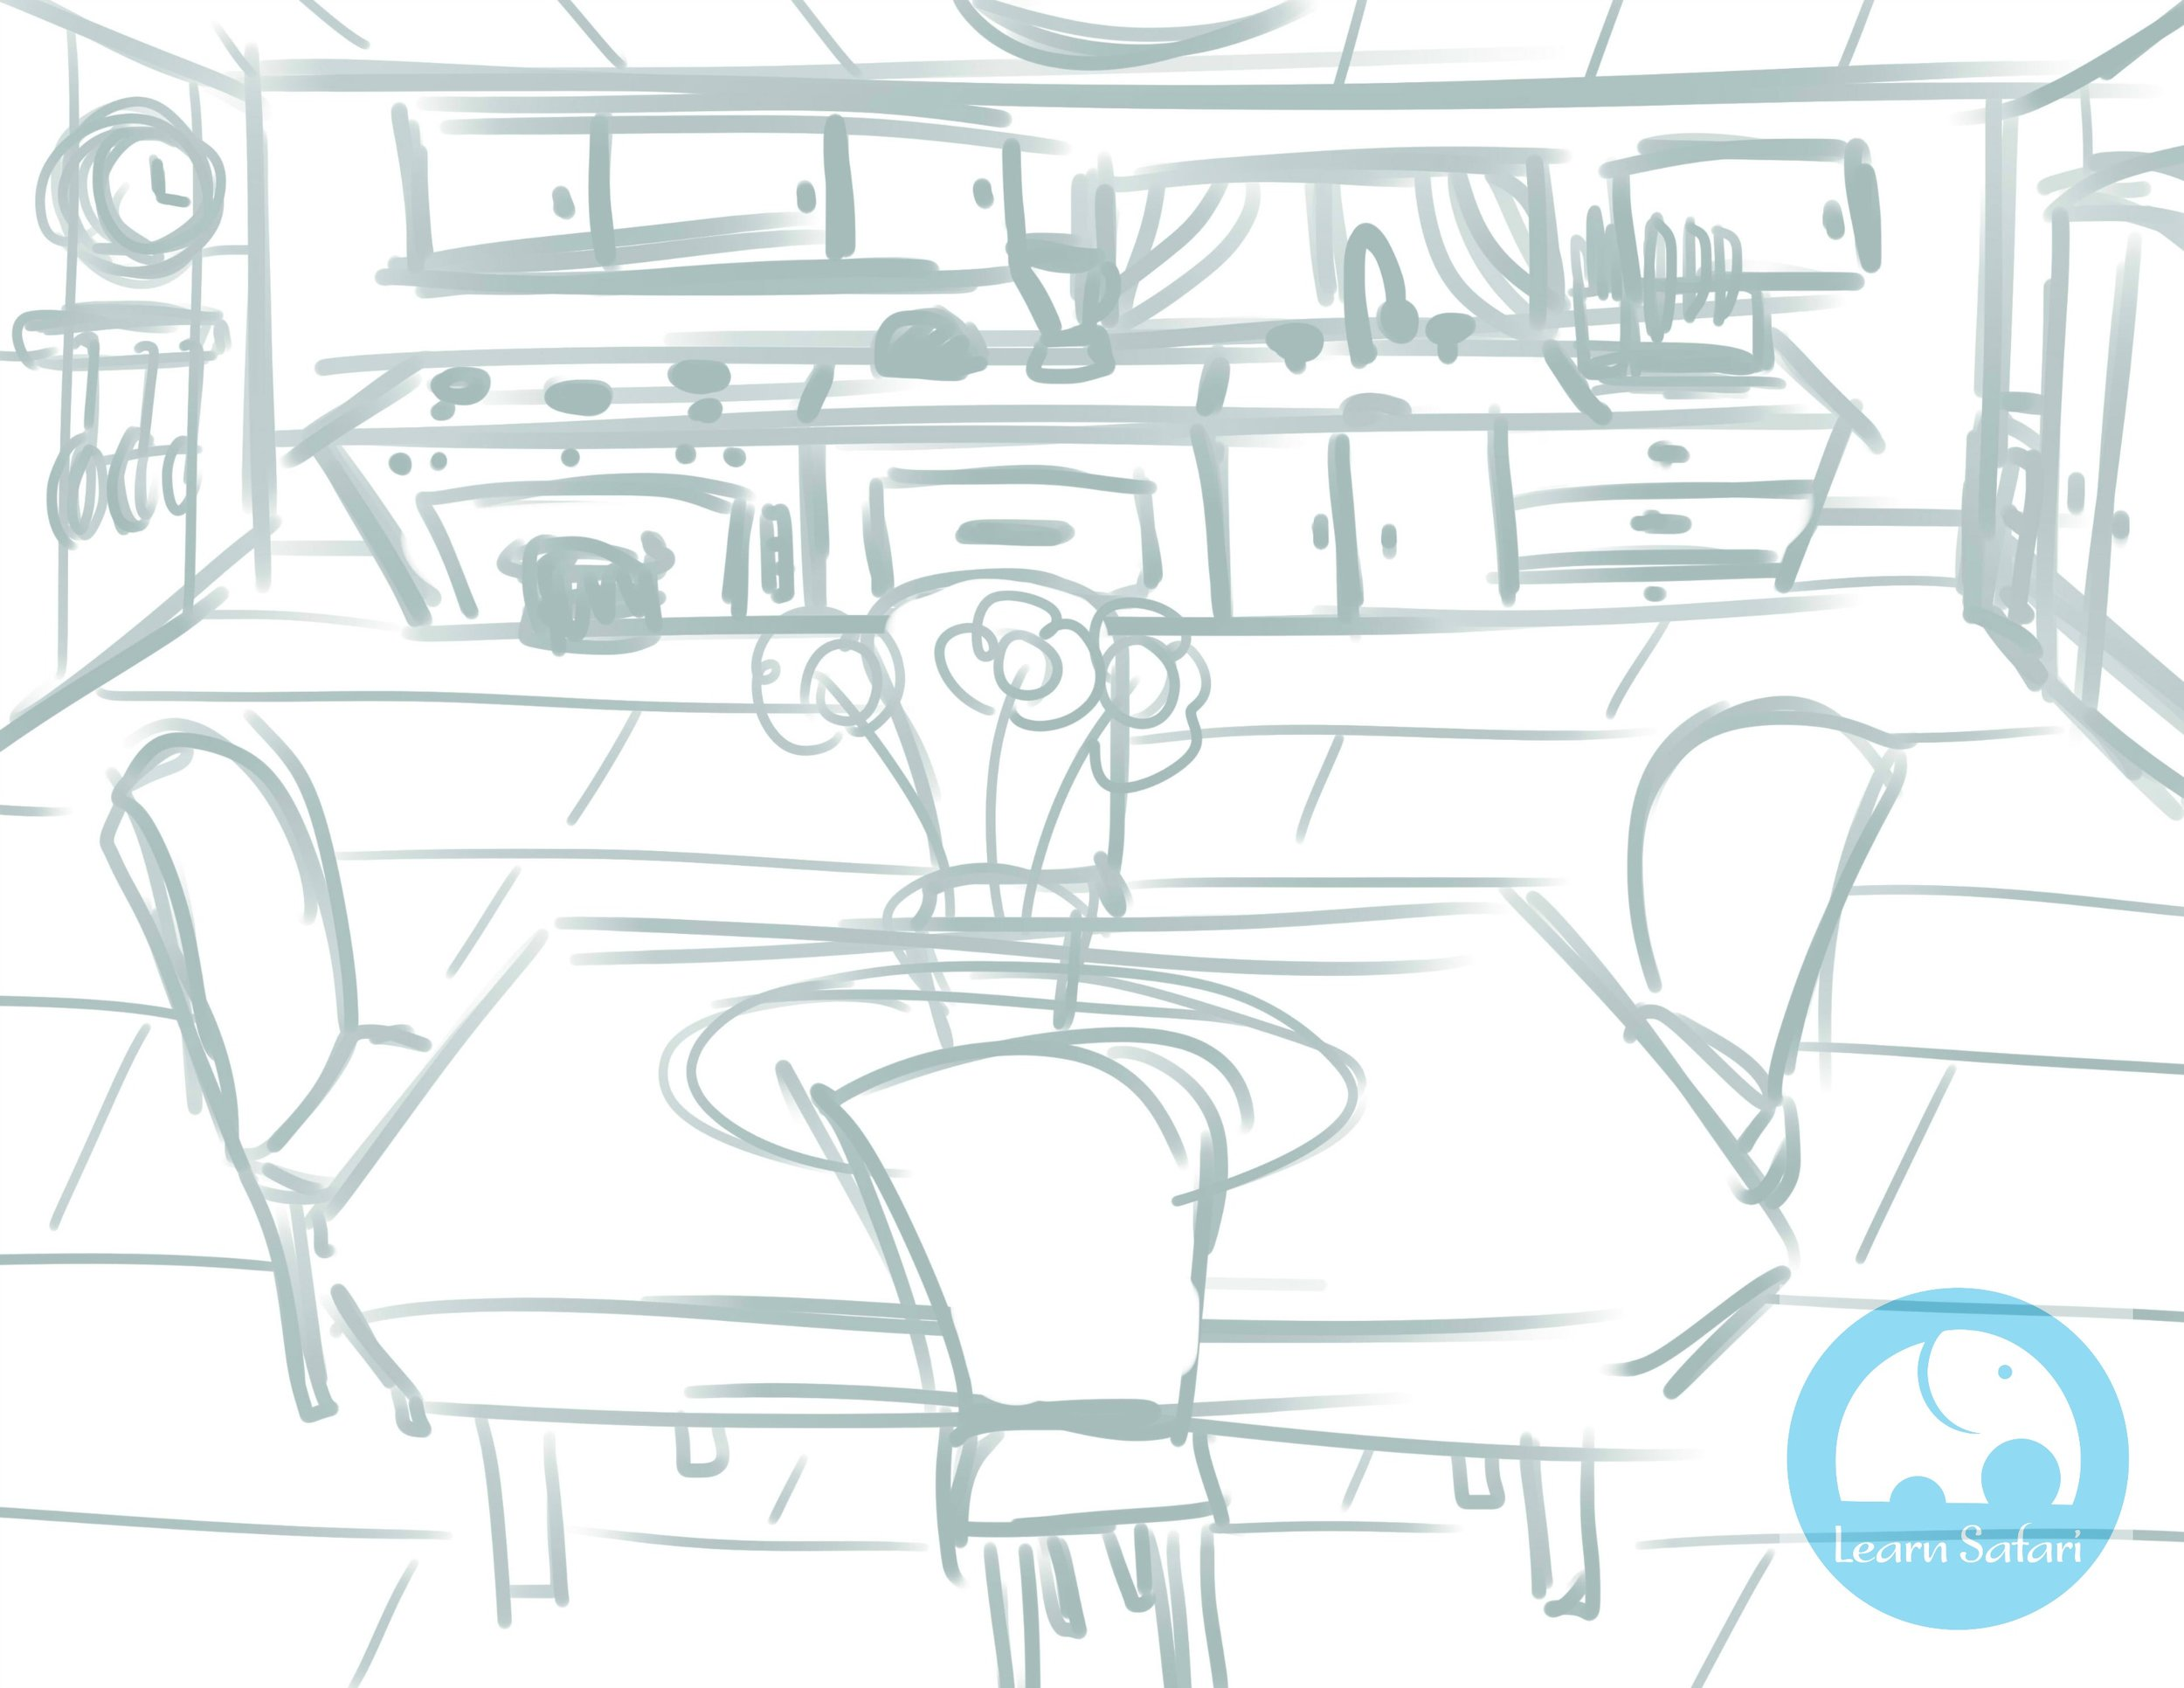 The Initial Sketch for the Spanish Safari Kitchen